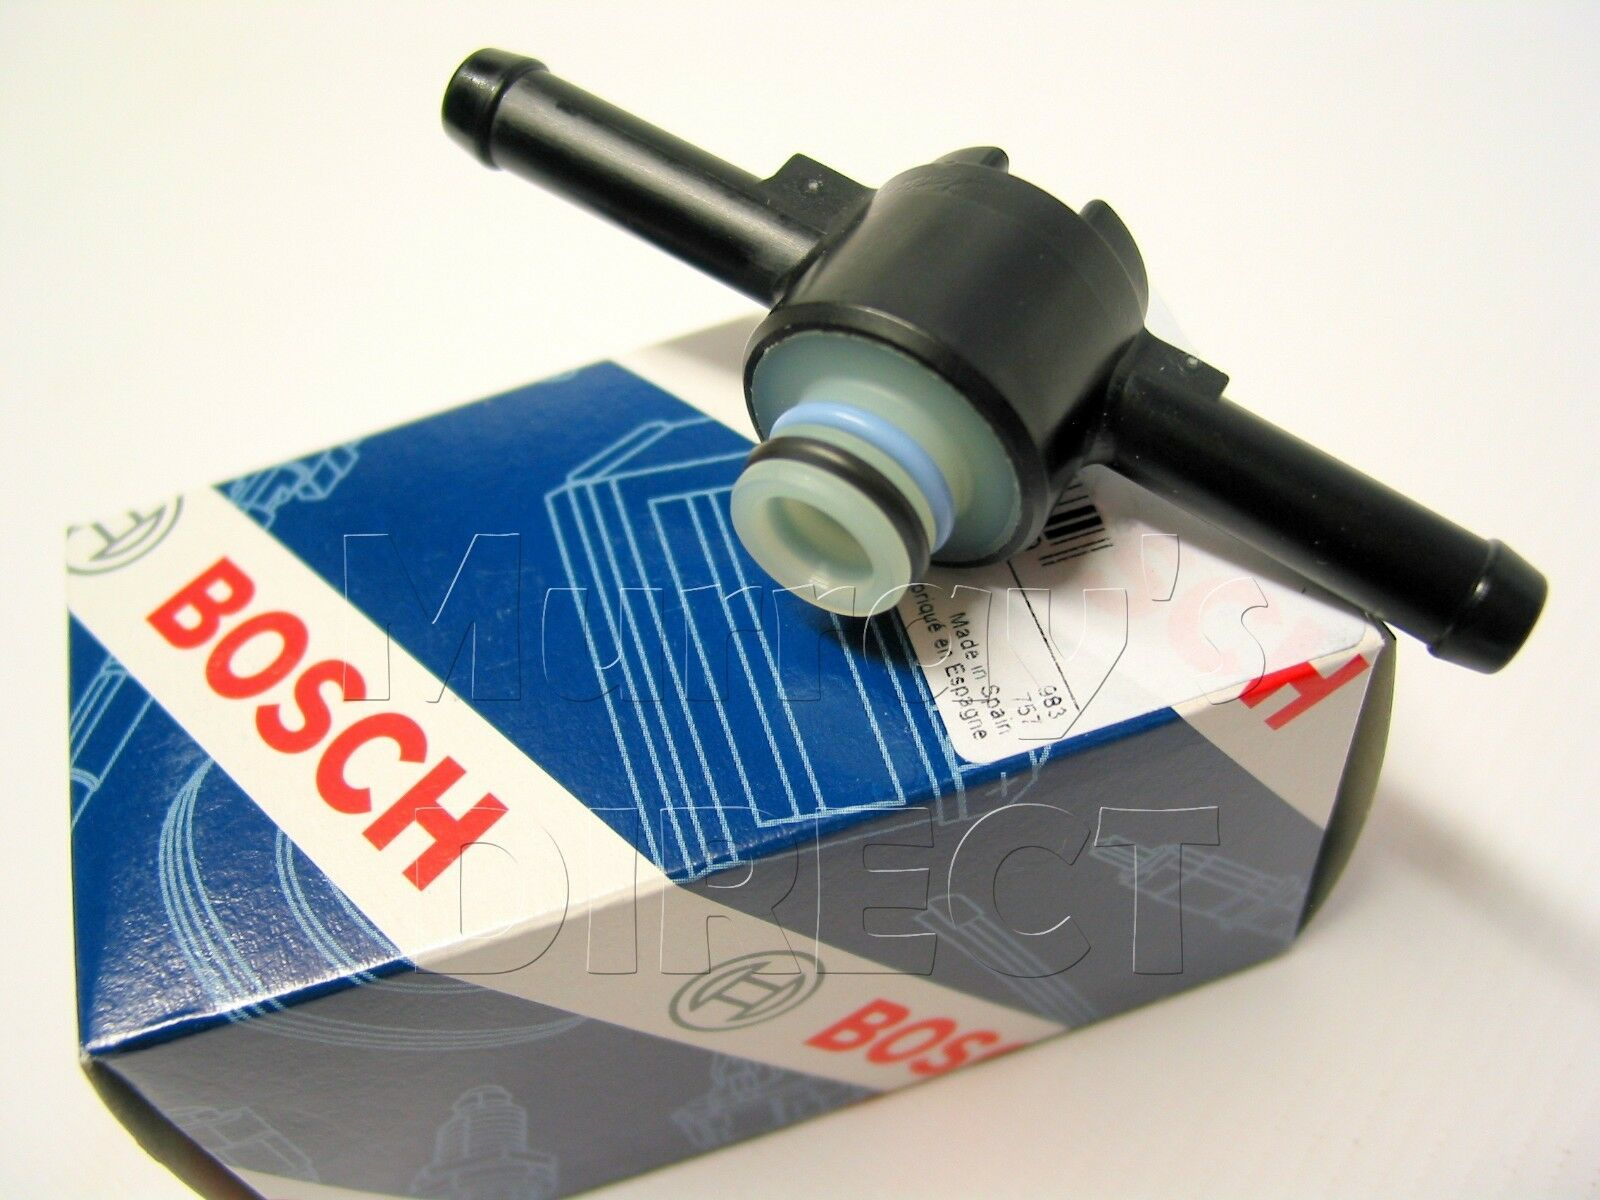 Bosch Oem Diesel Fuel Filter Valve Union Vw Audi Seat Skoda Tdi 2000 Beetle 1 Of 2free Shipping